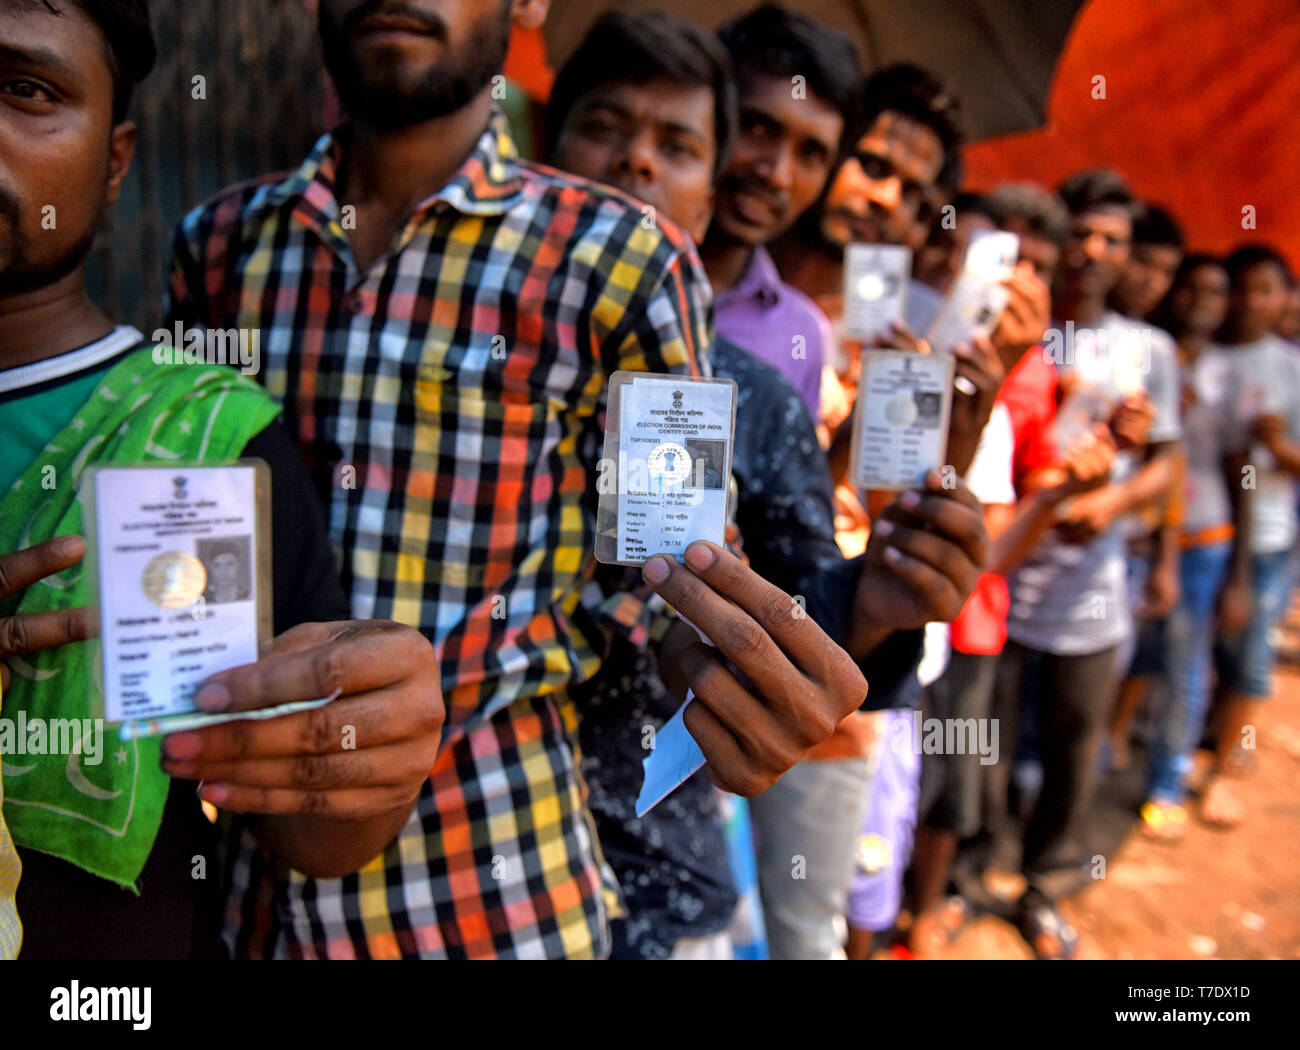 Titagarh, WEST BENGAL, India. 6th May, 2019. Voters seen with their Identity Cards before casting their Votes at a polling station during the 5th Phase of General Elections of India. Credit: Avishek Das/SOPA Images/ZUMA Wire/Alamy Live News - Stock Image